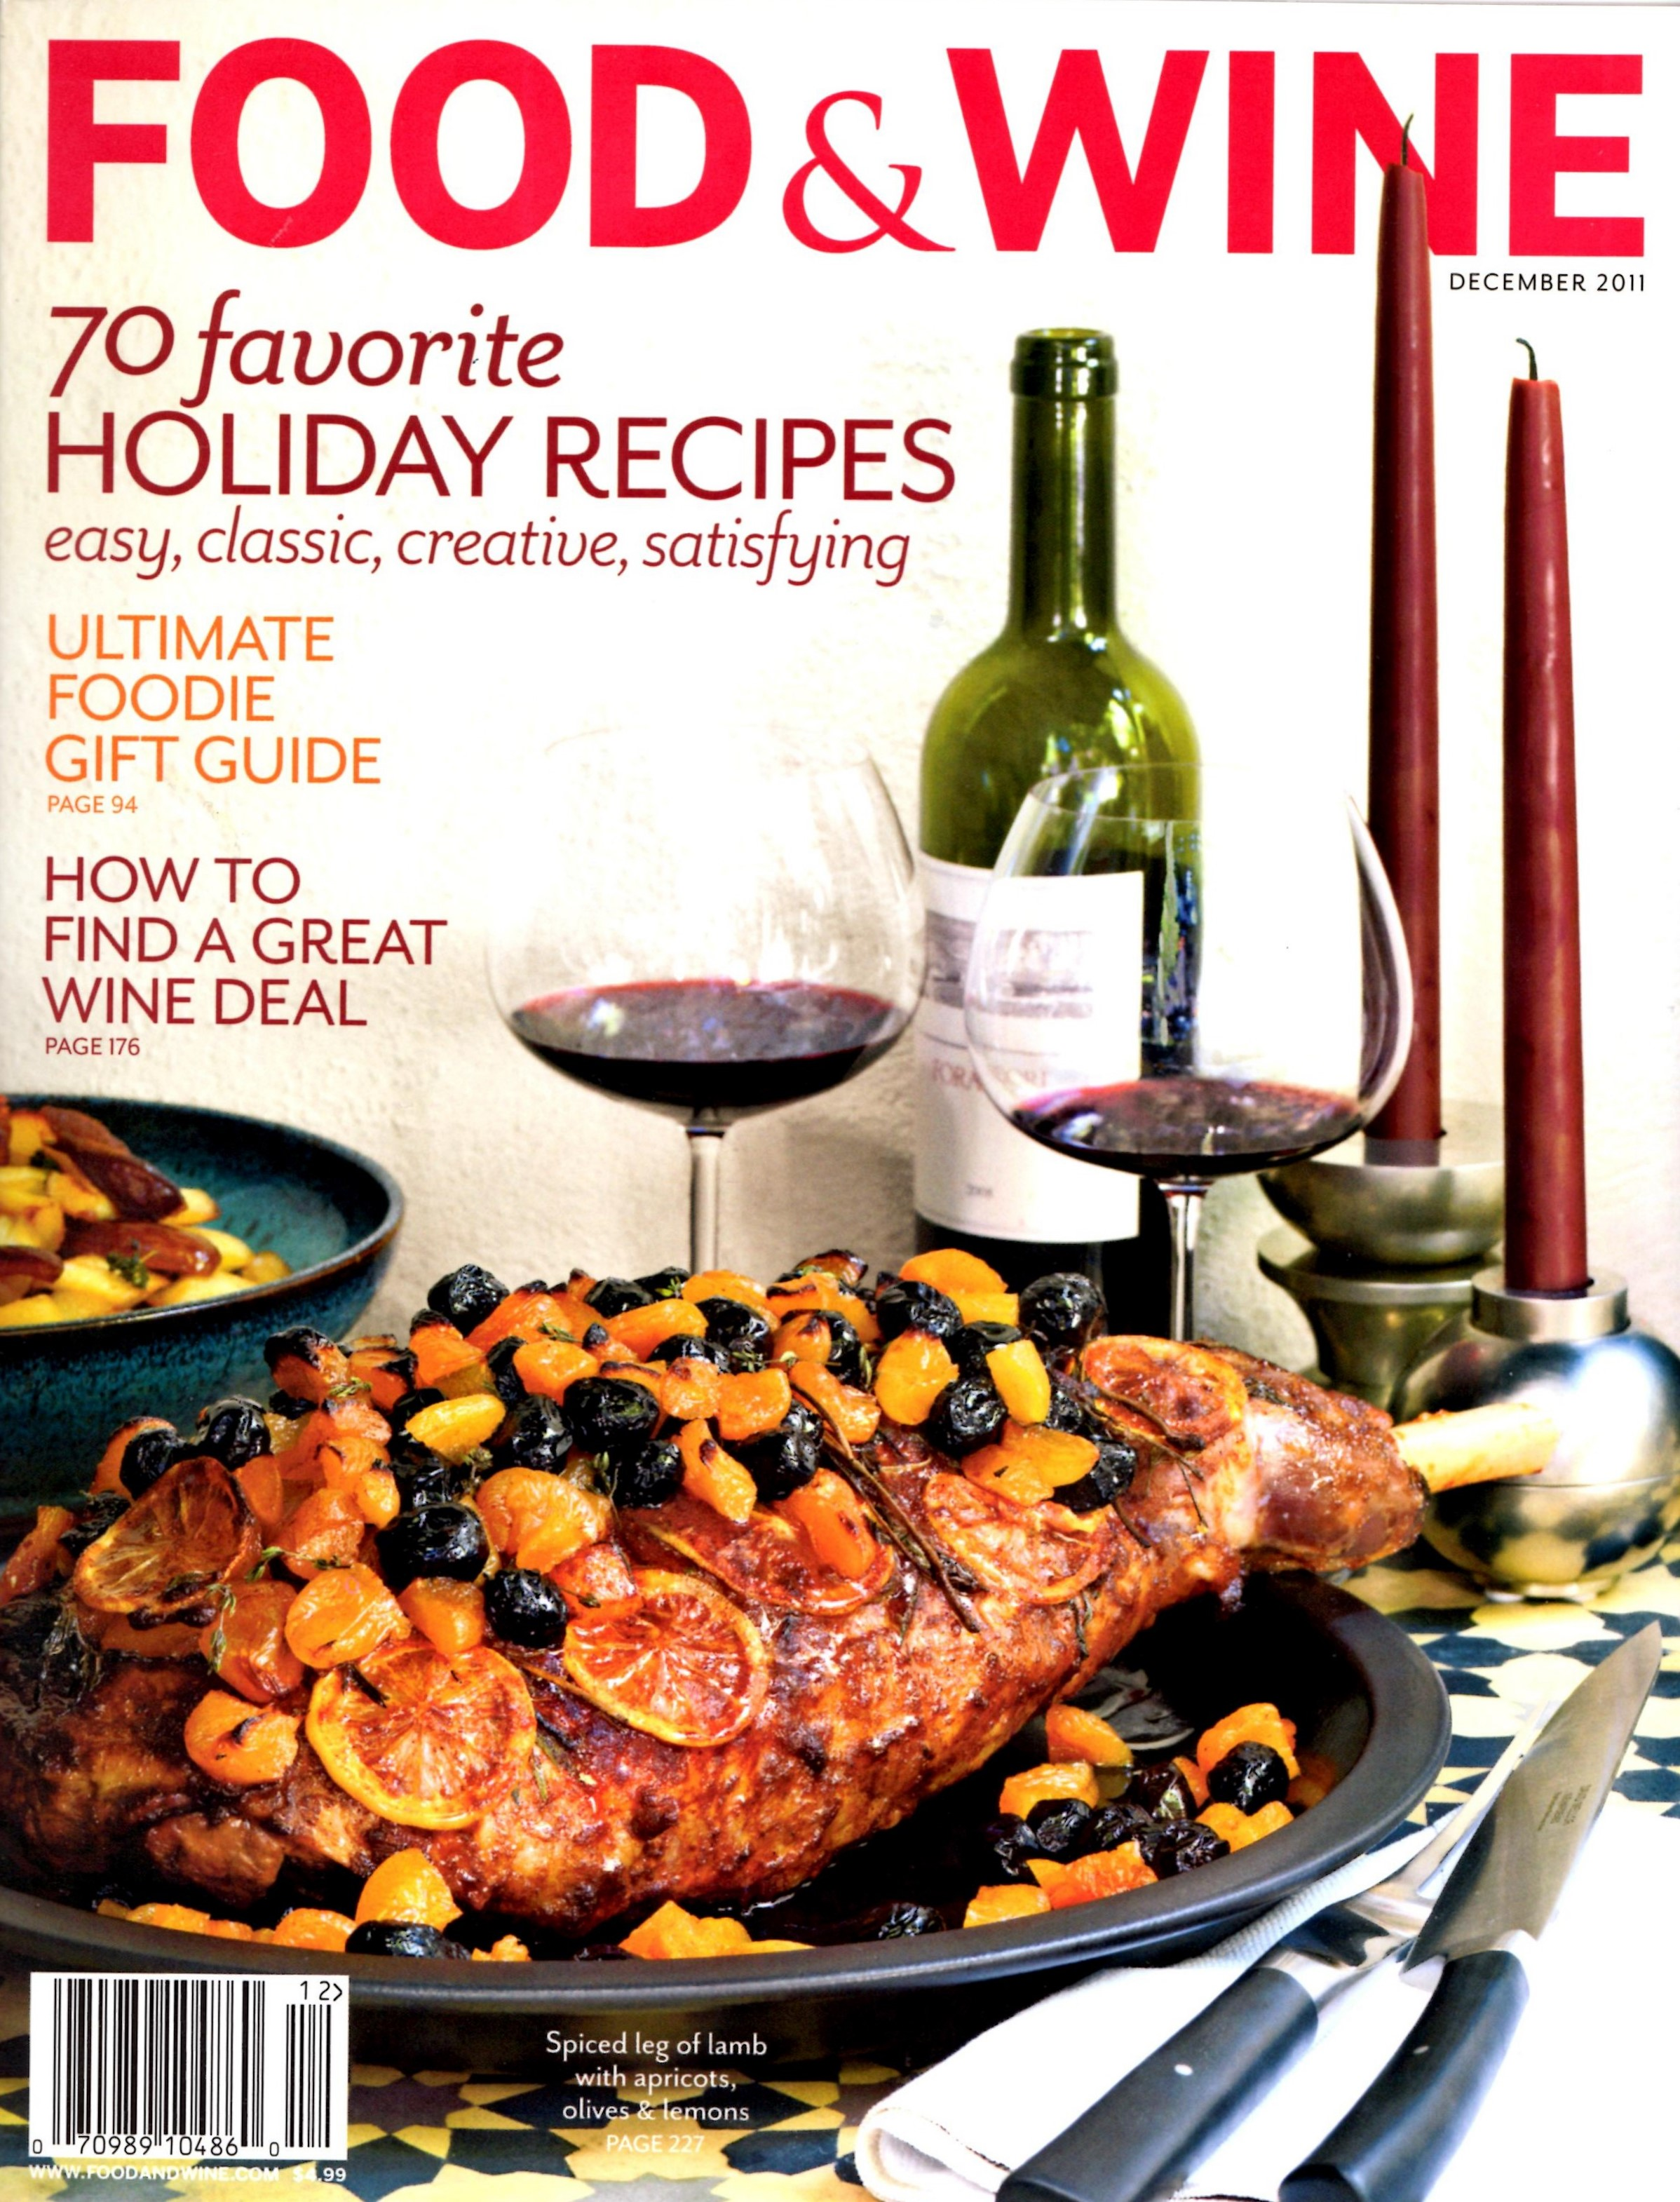 Cookthatbook food wine magazine december cover recipe isnt forumfinder Image collections